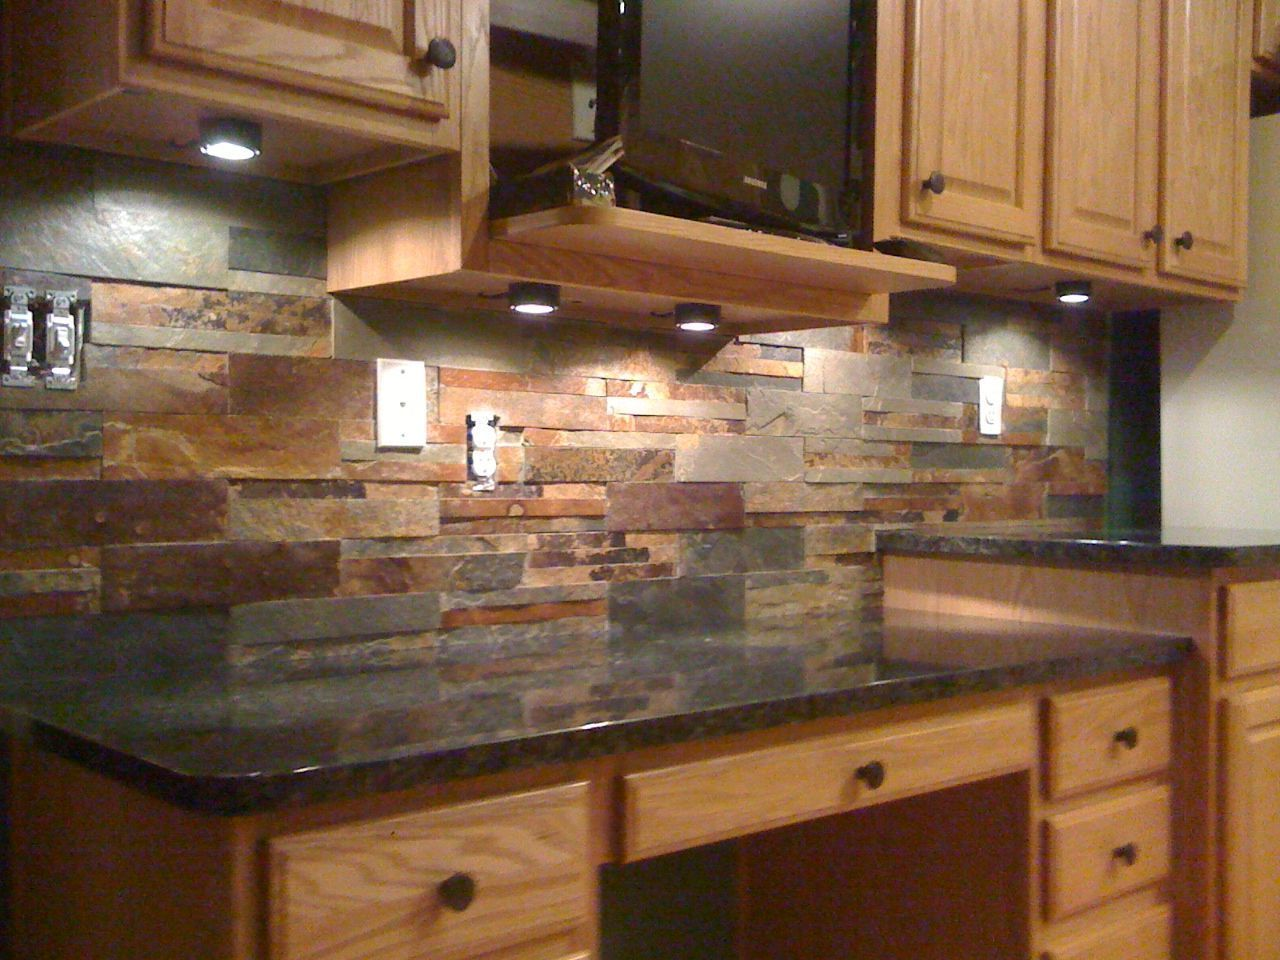 Black Slate Backsplash : This natural slate tile backsplash is shown with uba tuba